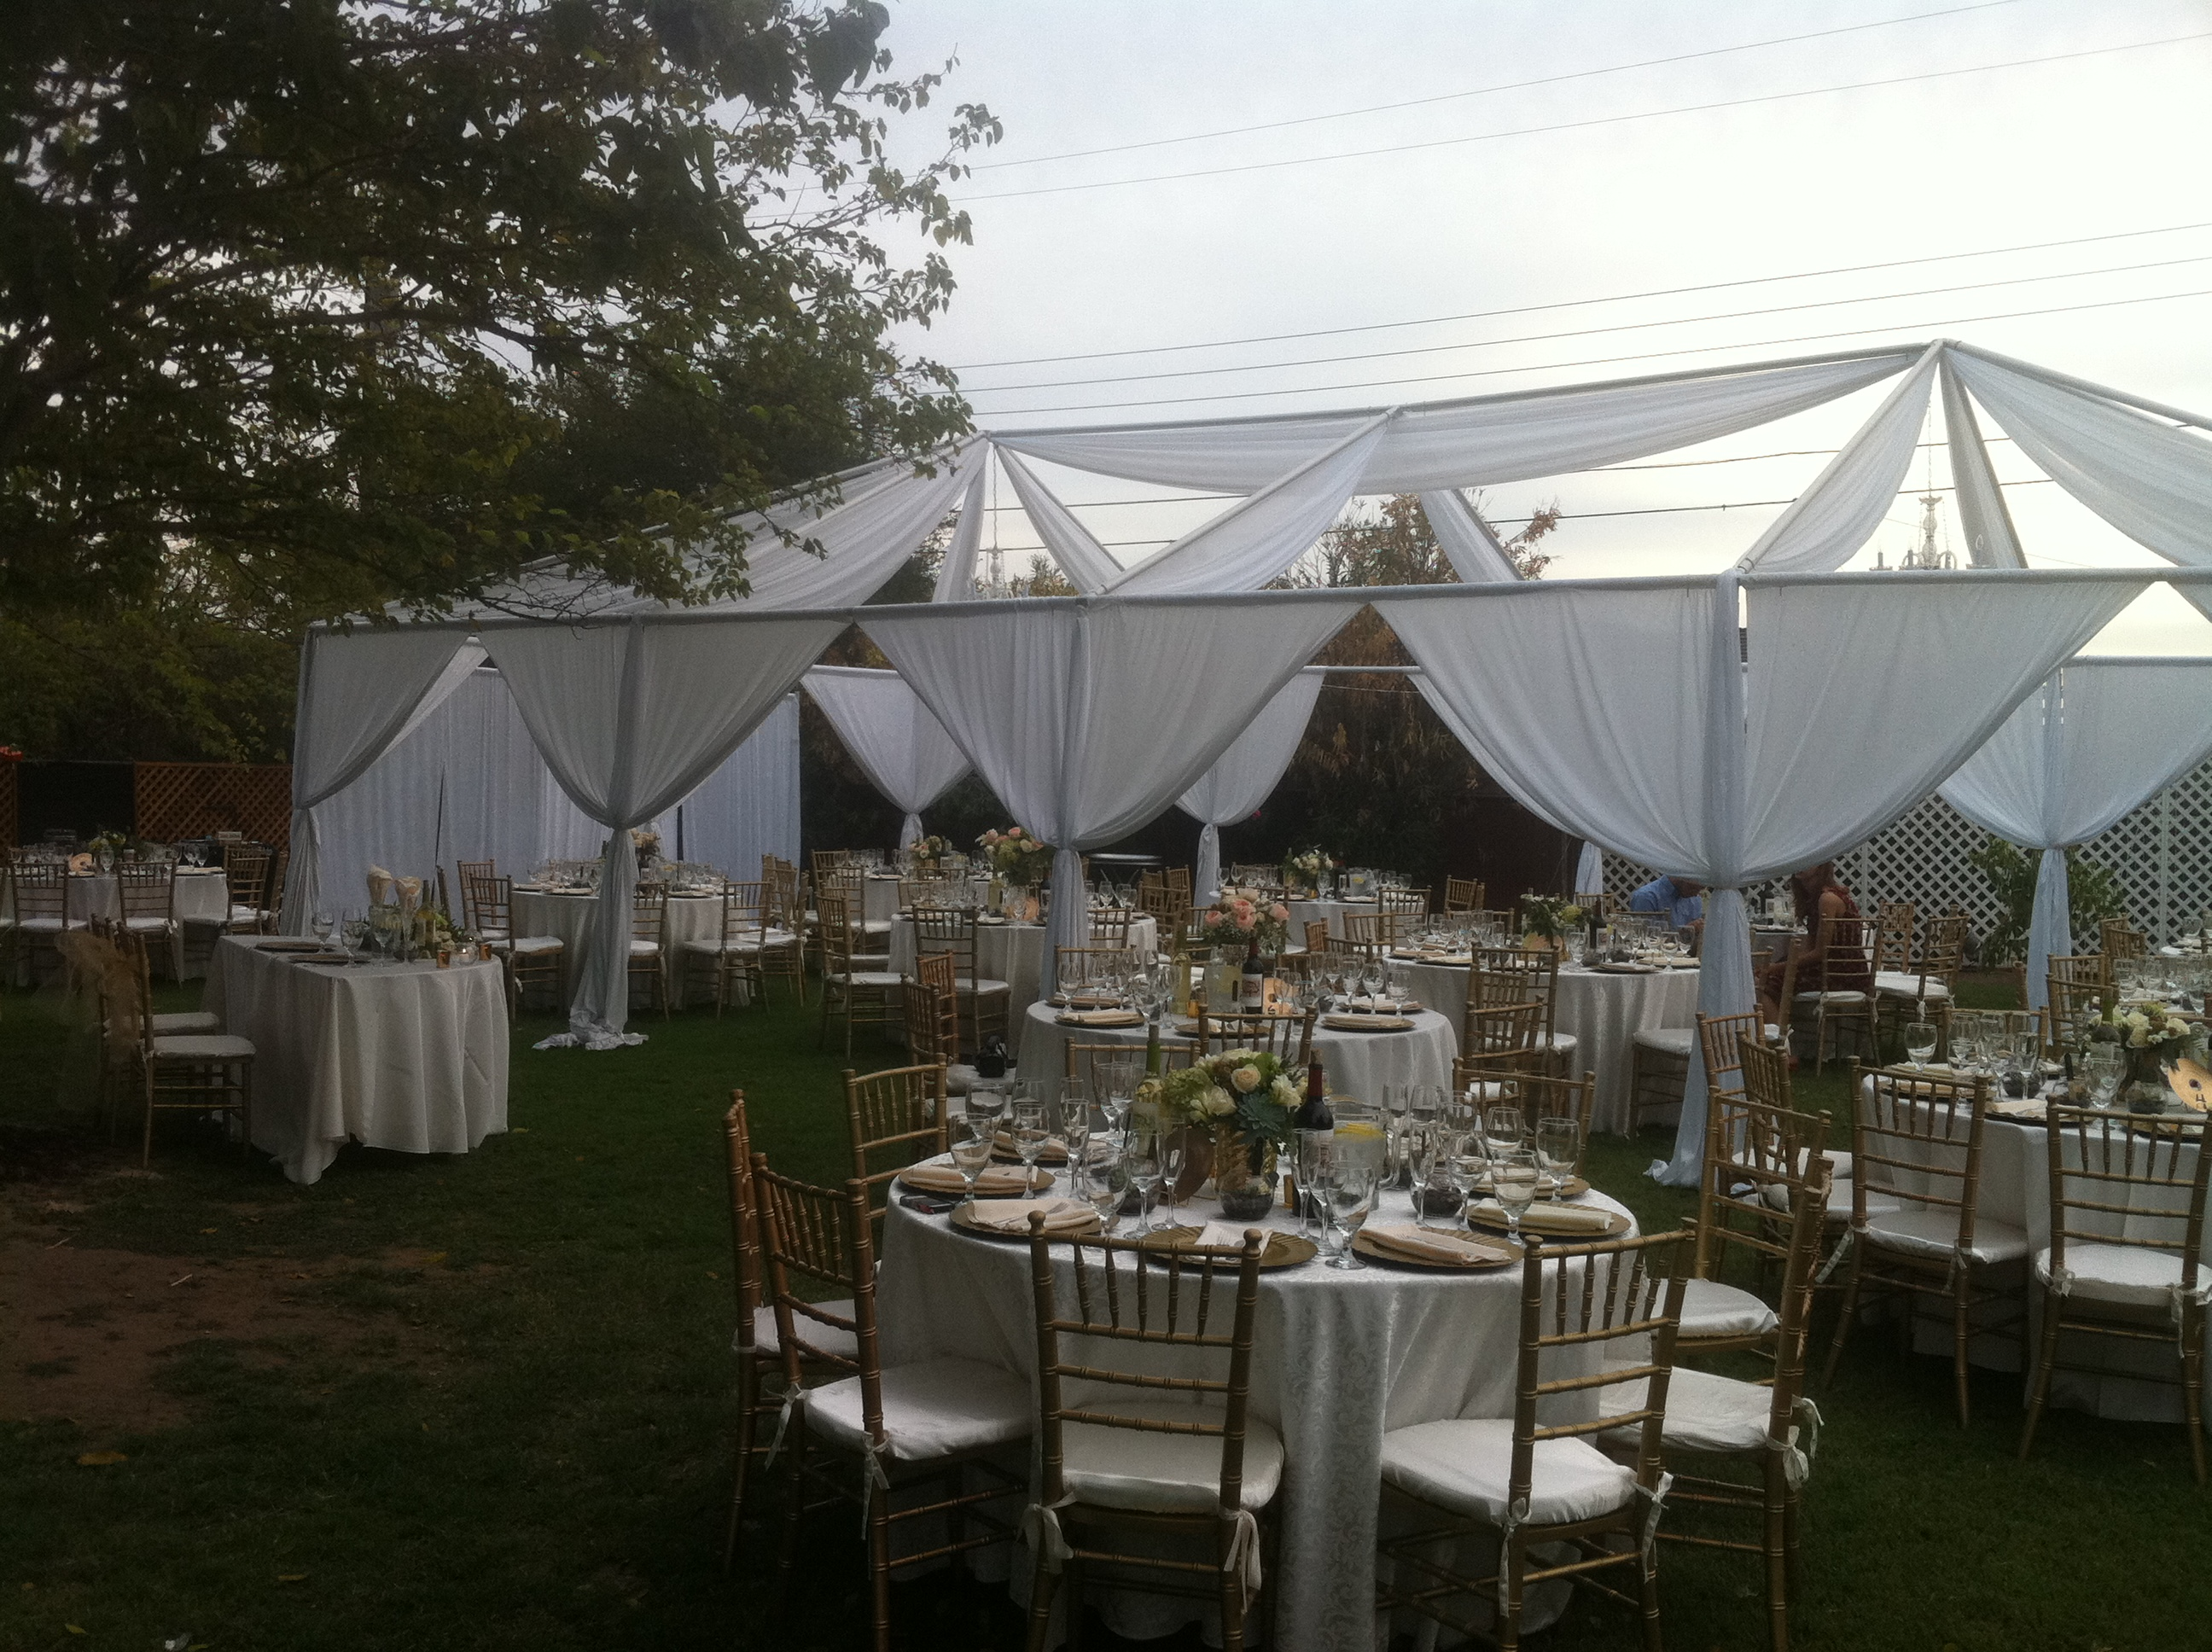 Tent And Chair Rentals Party Rental San Diego La Jolla Chula Vista 818 636 4104